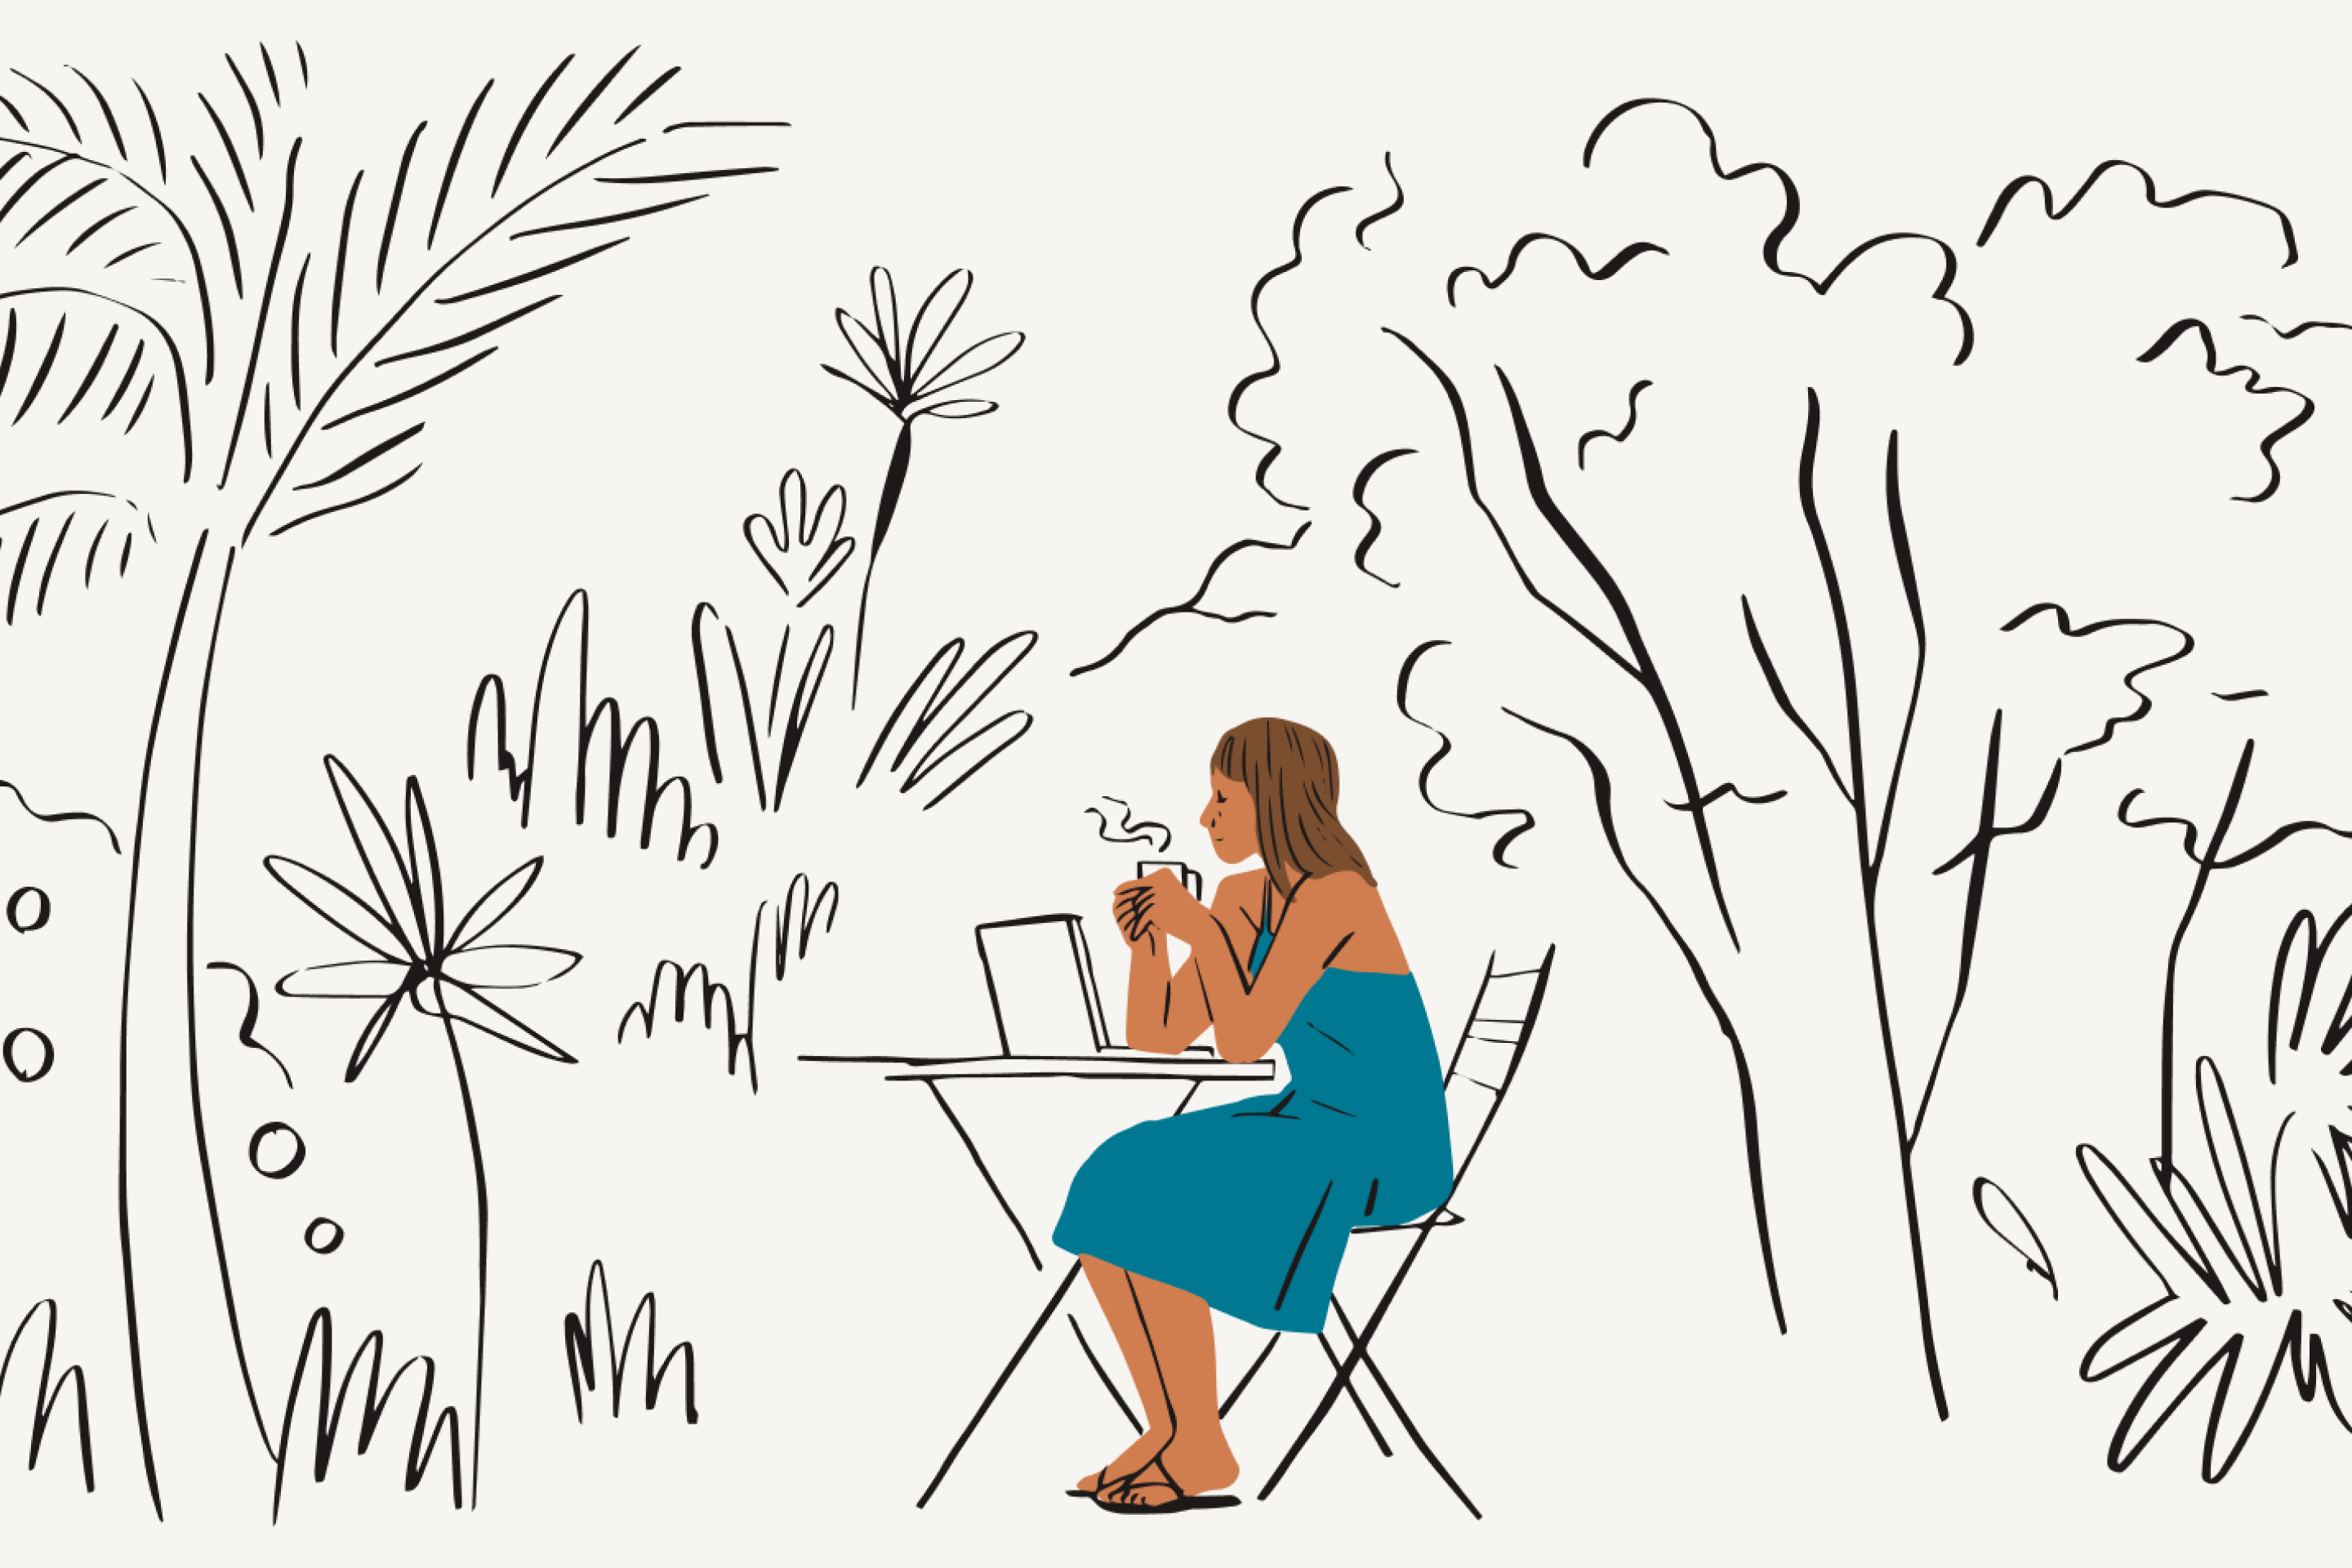 A remote worker takes a break